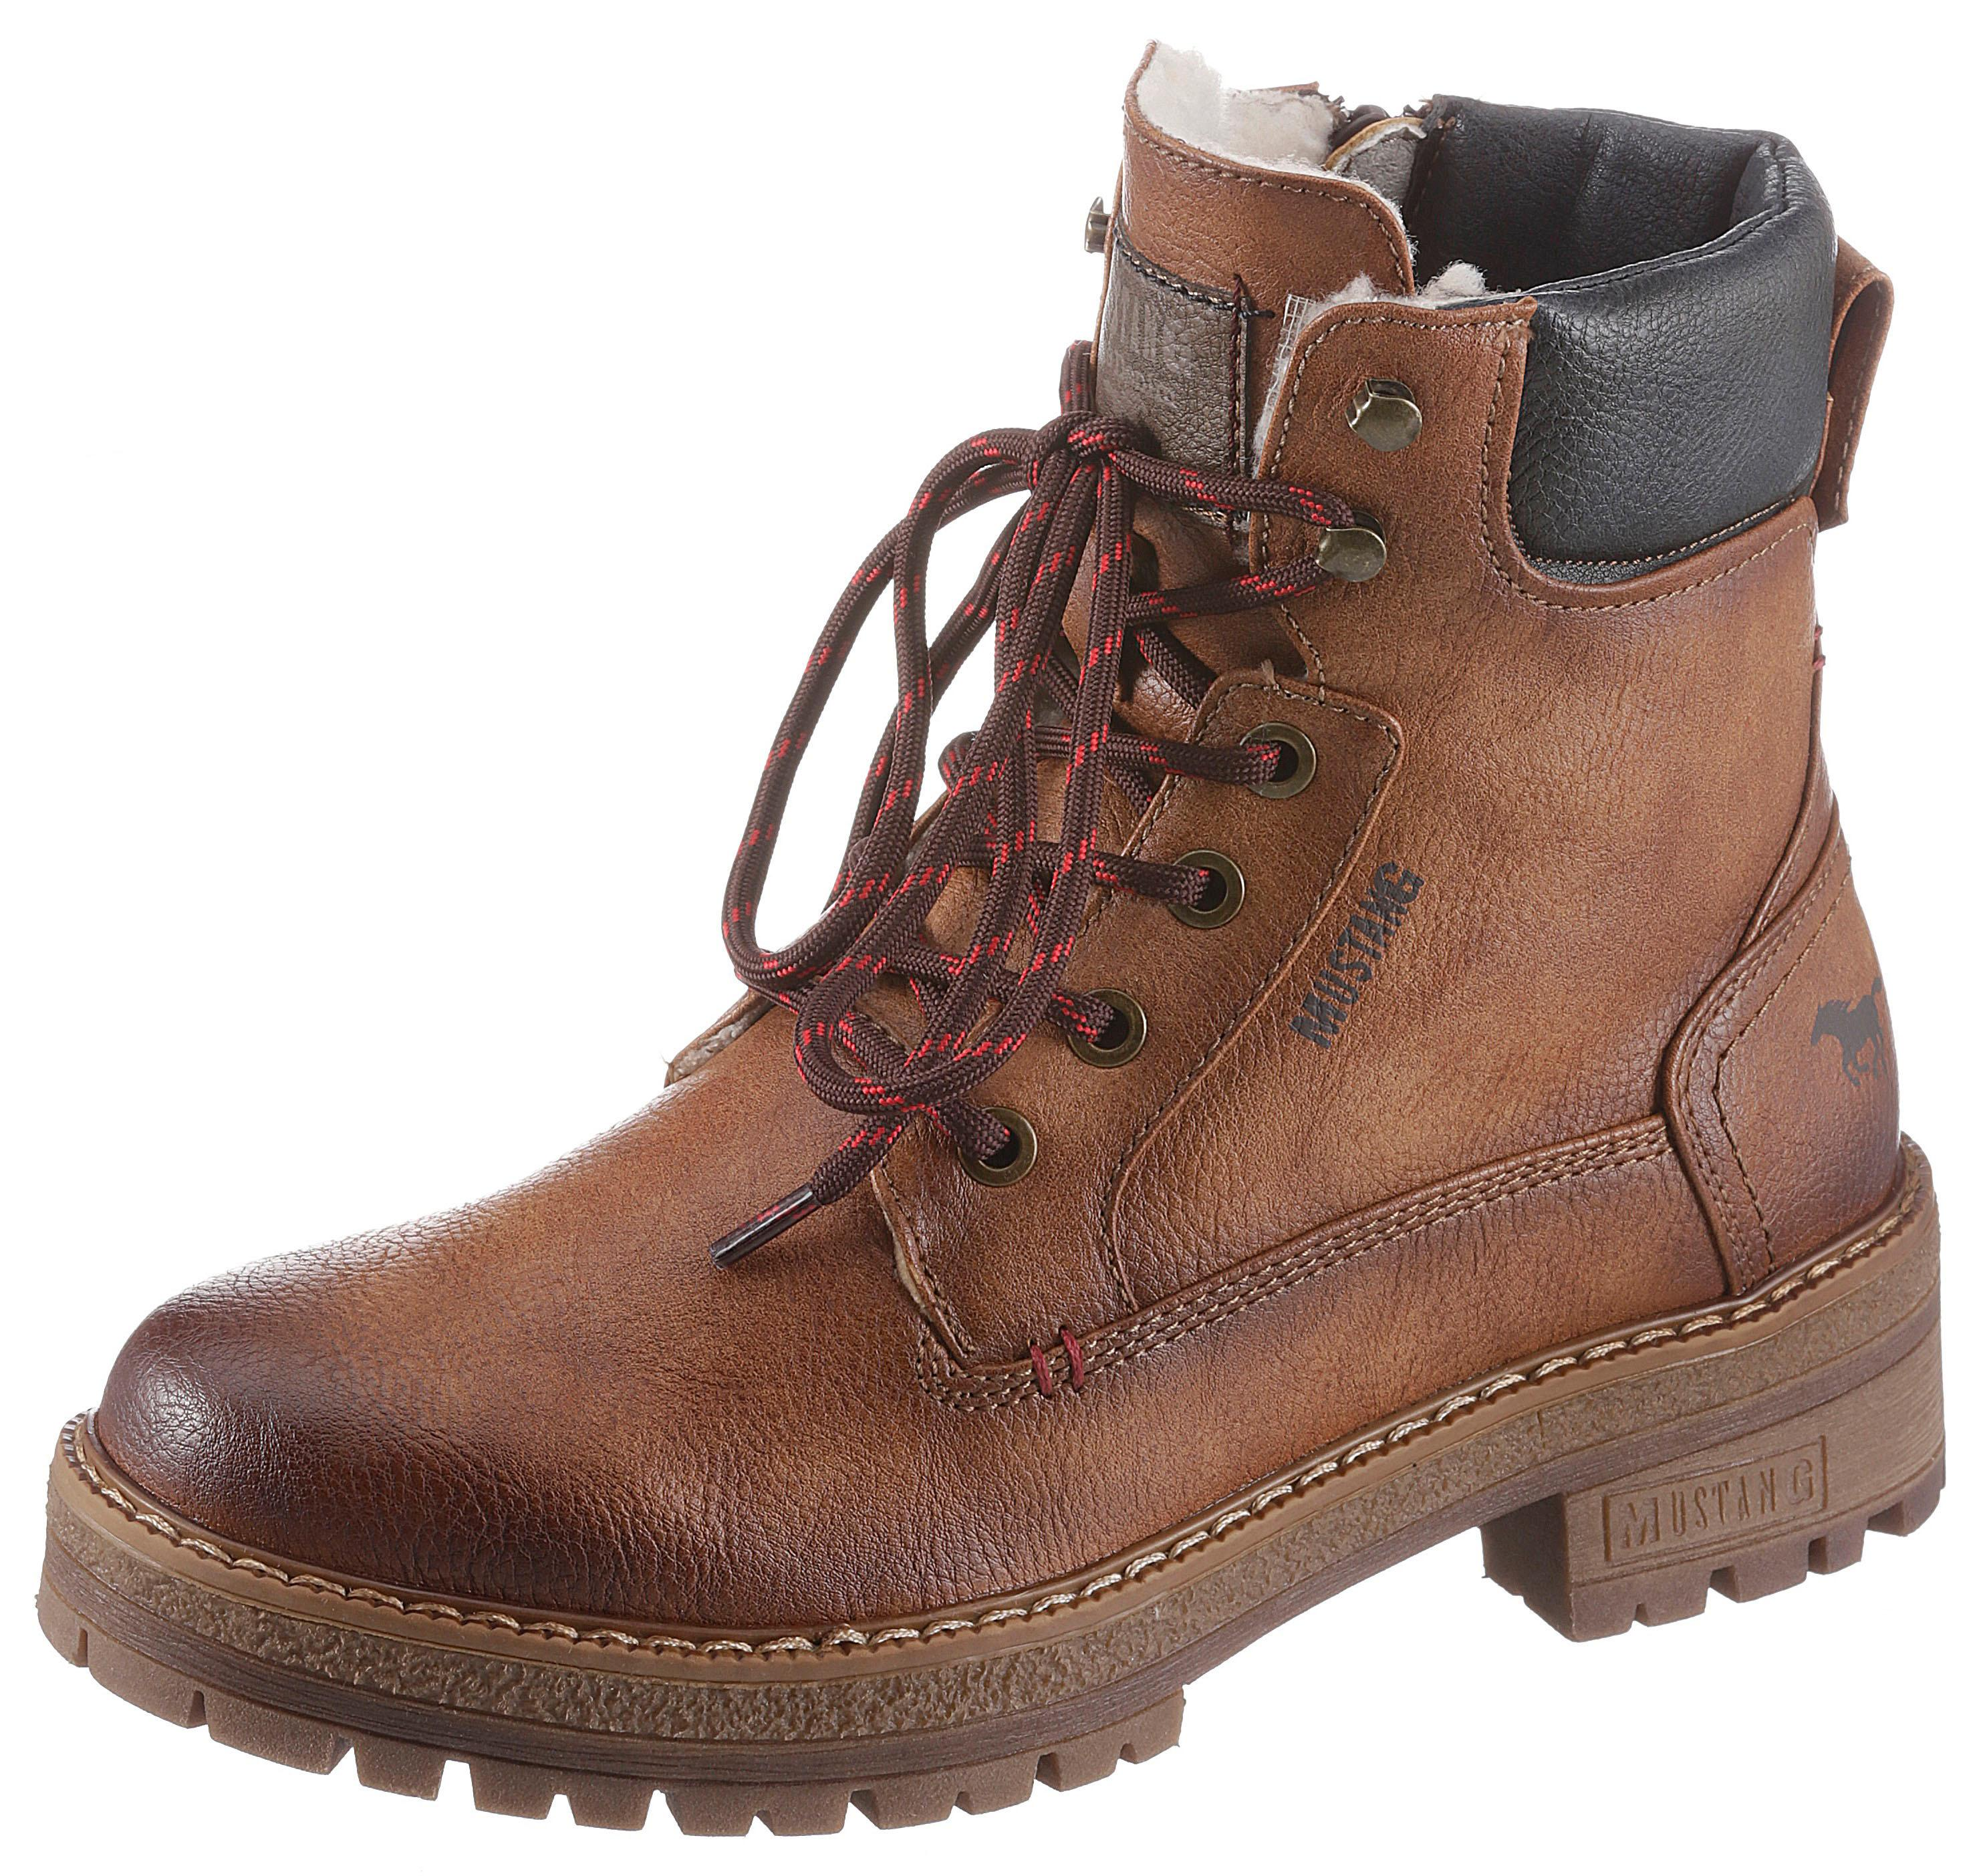 Mustang Shoes Winterboots   Schuhe > Boots > Winterboots   mustang shoes